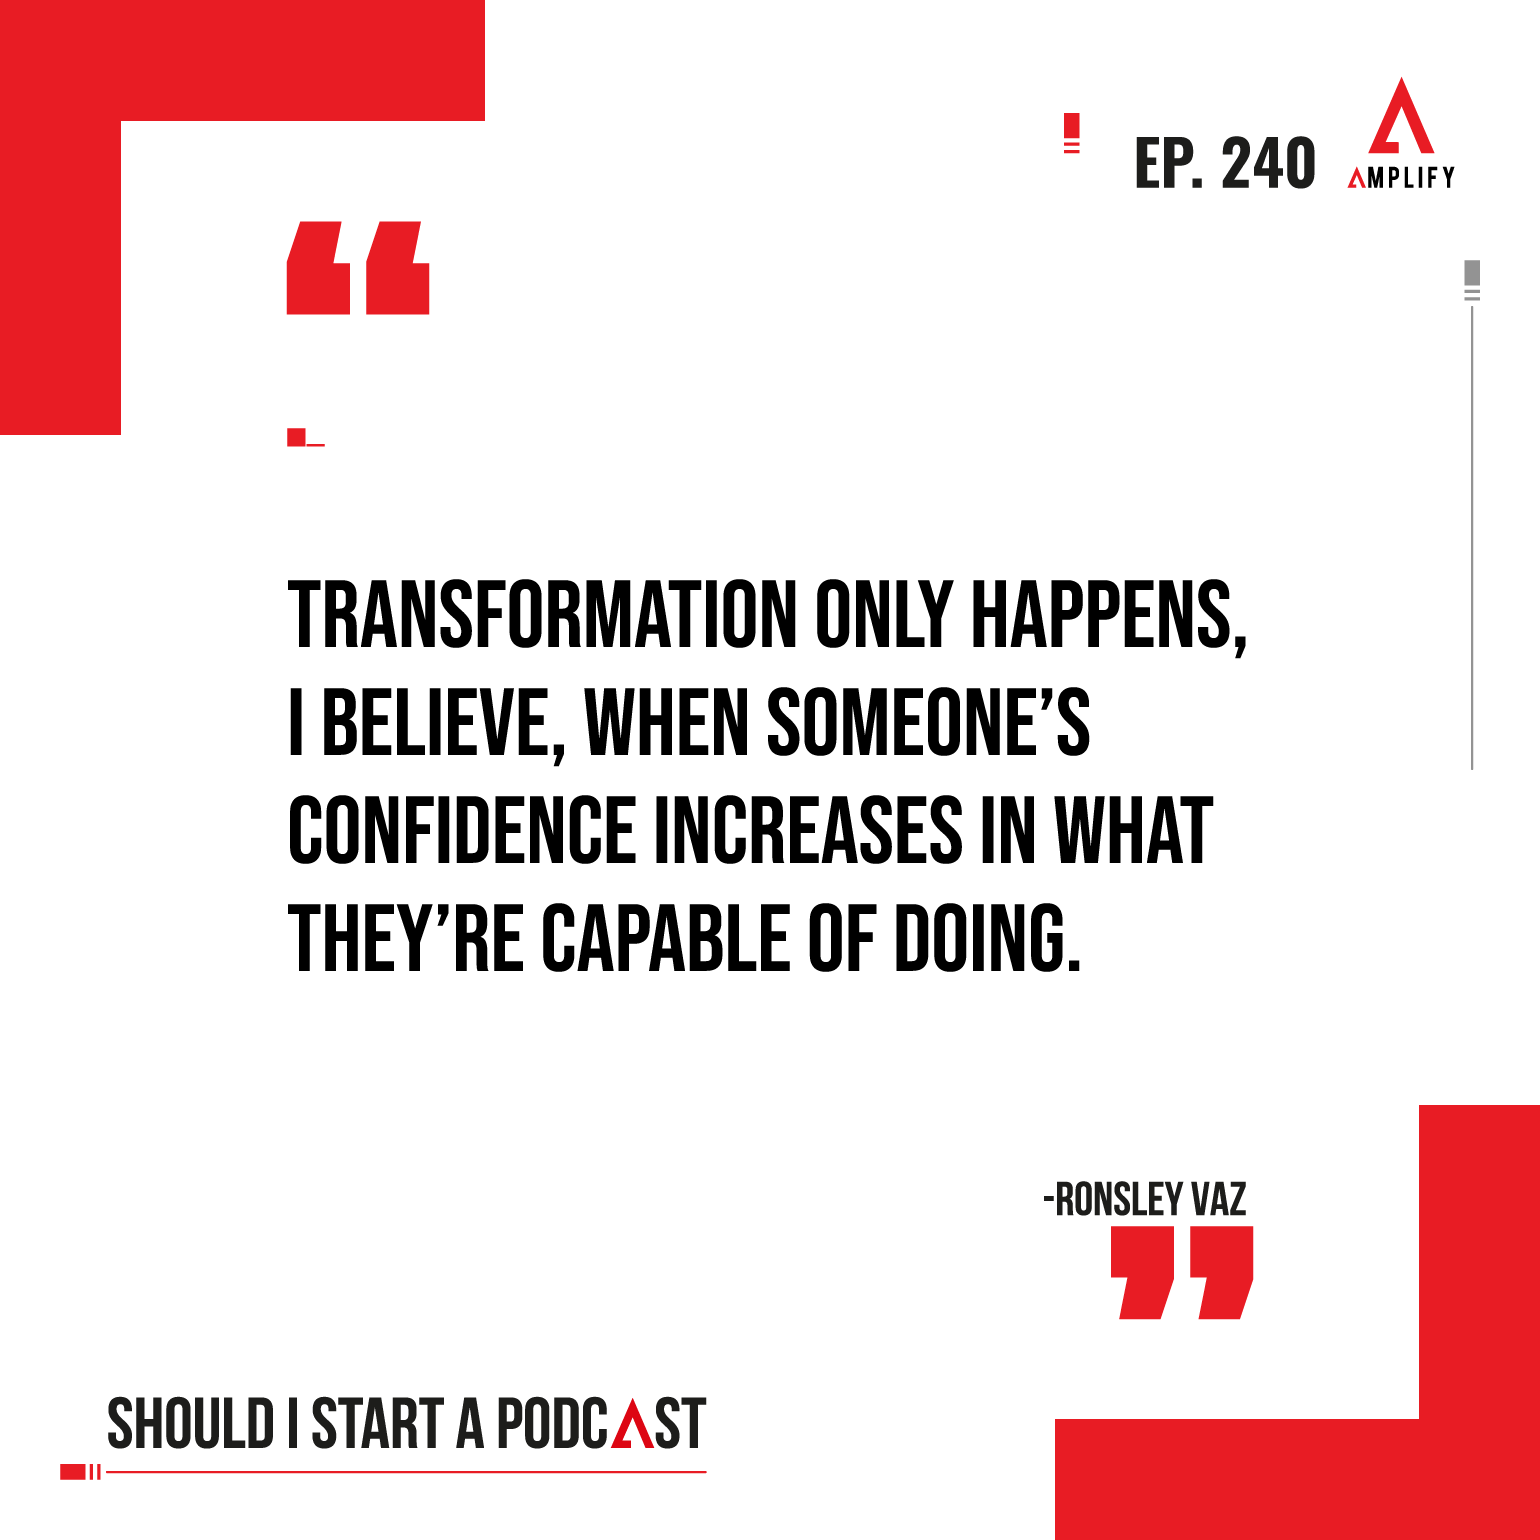 Quote from the podcast episode